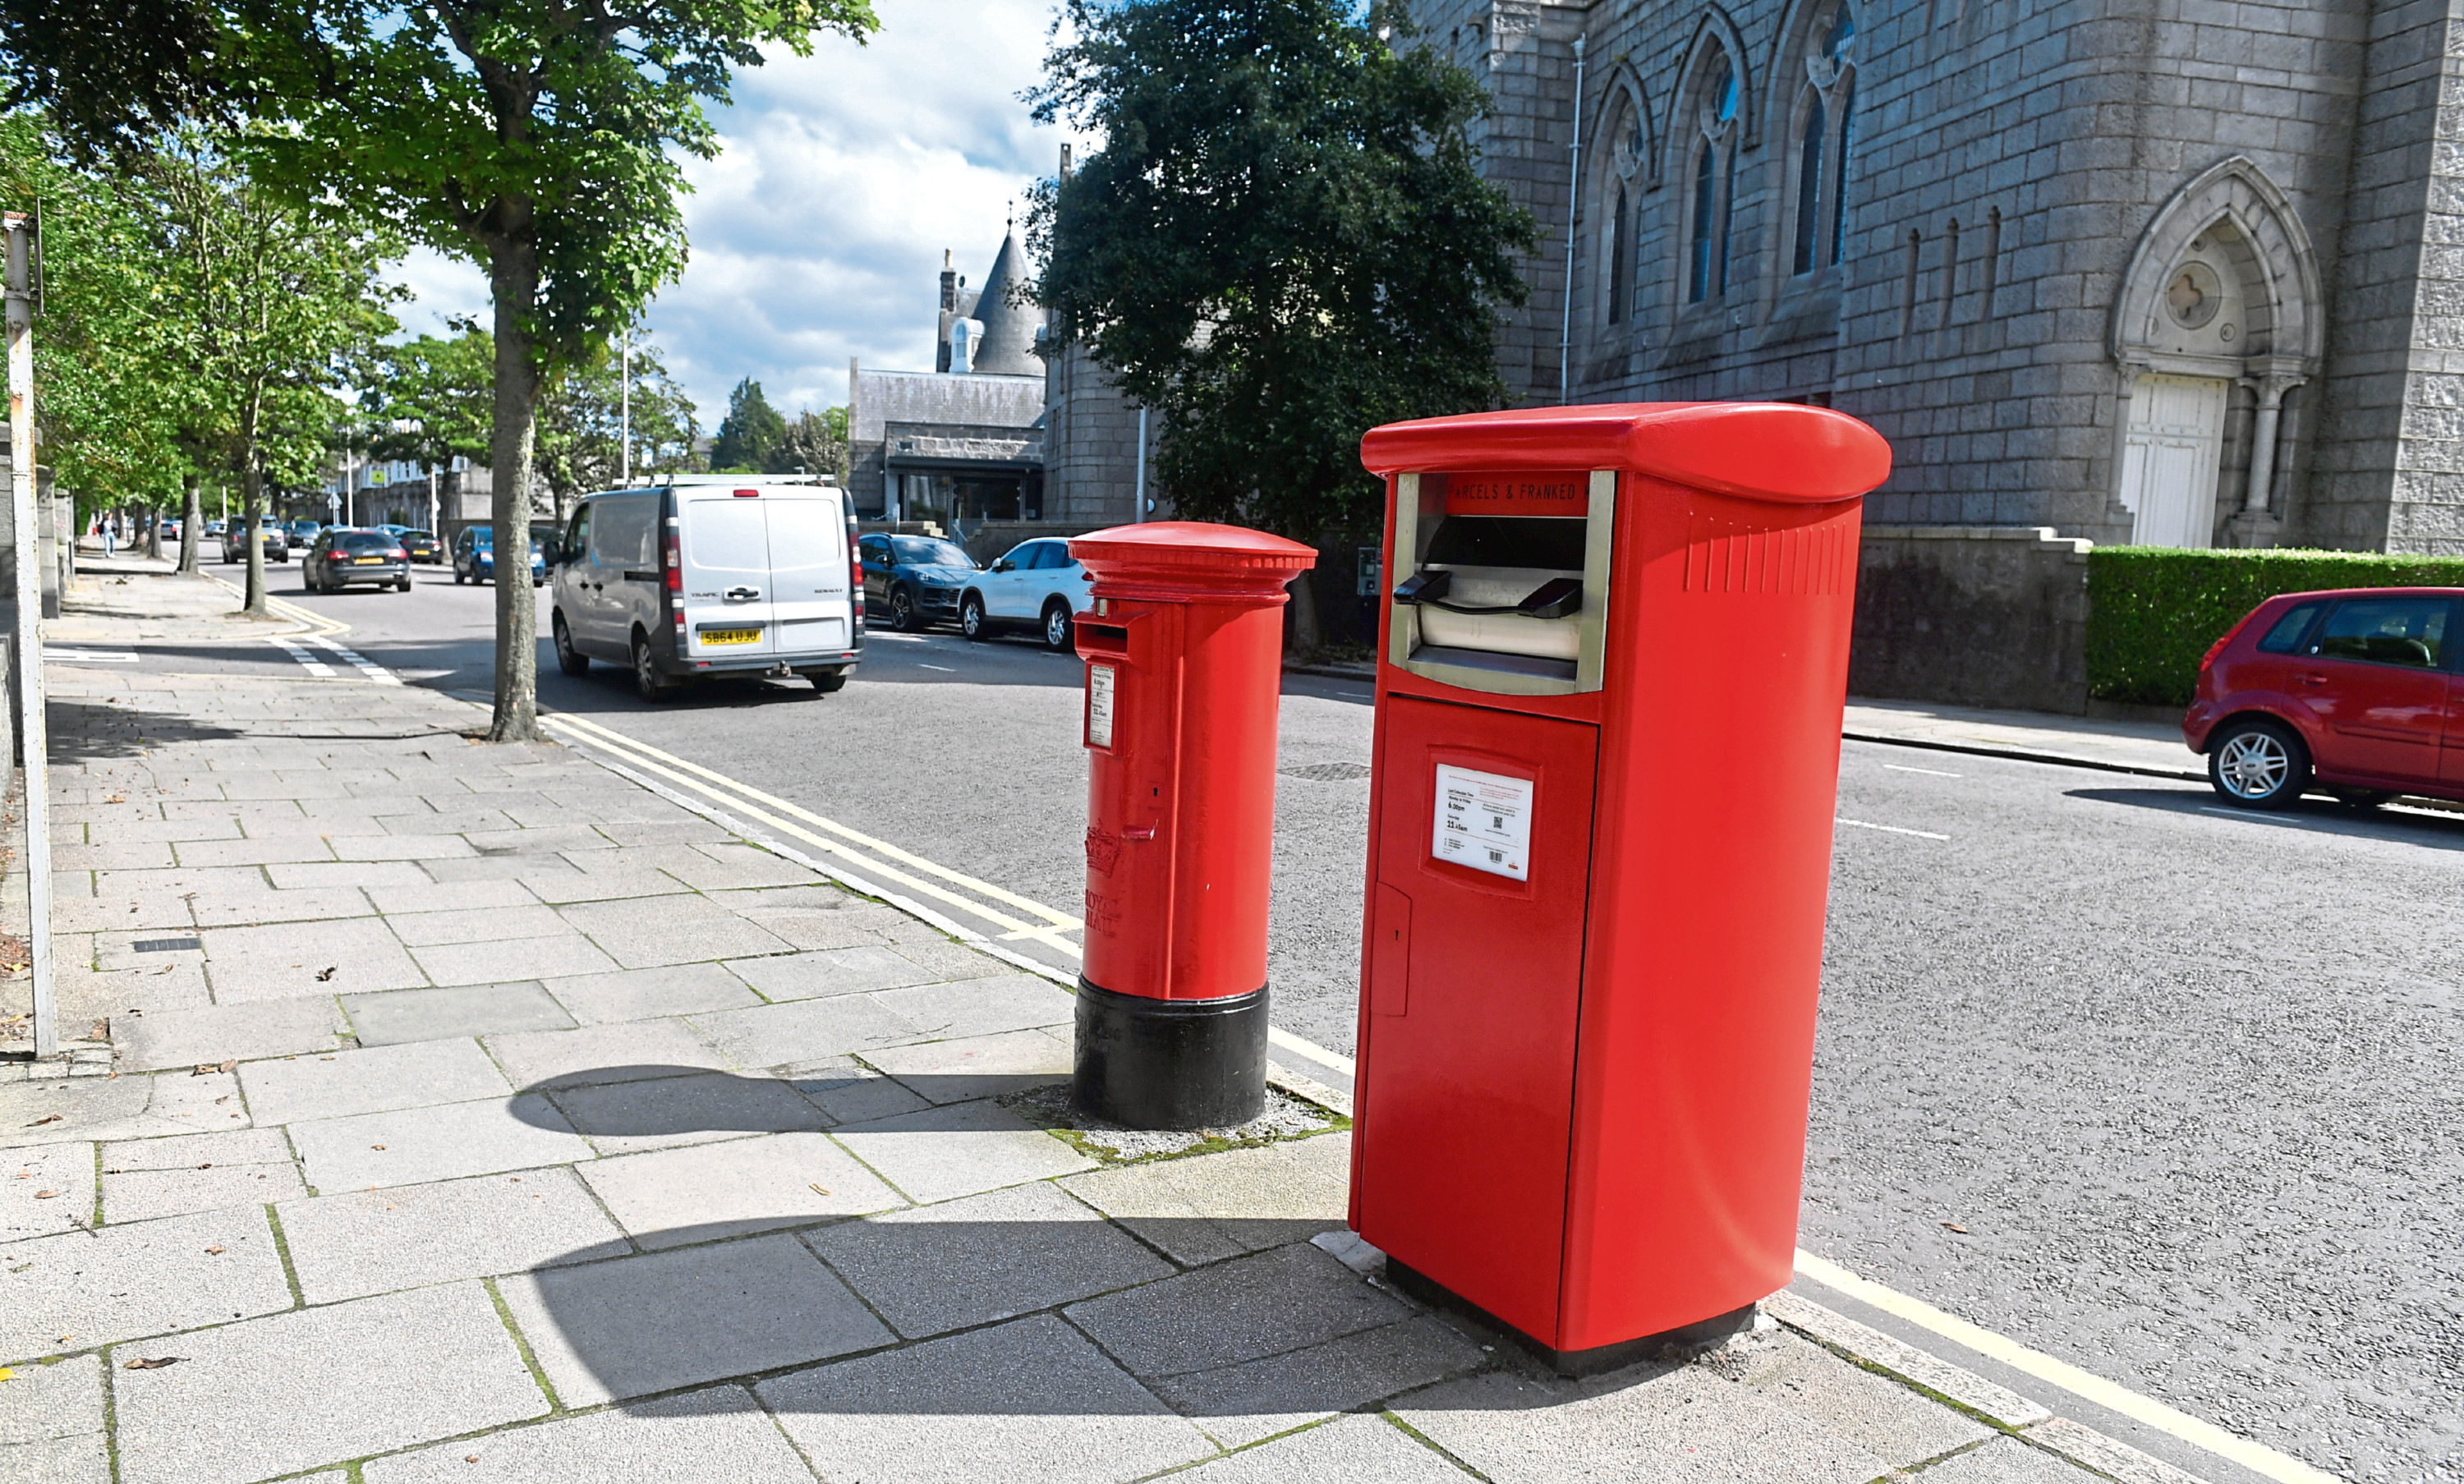 Around 1,400 existing boxes are planned to be converted, but all regular letter boxes will remain in place